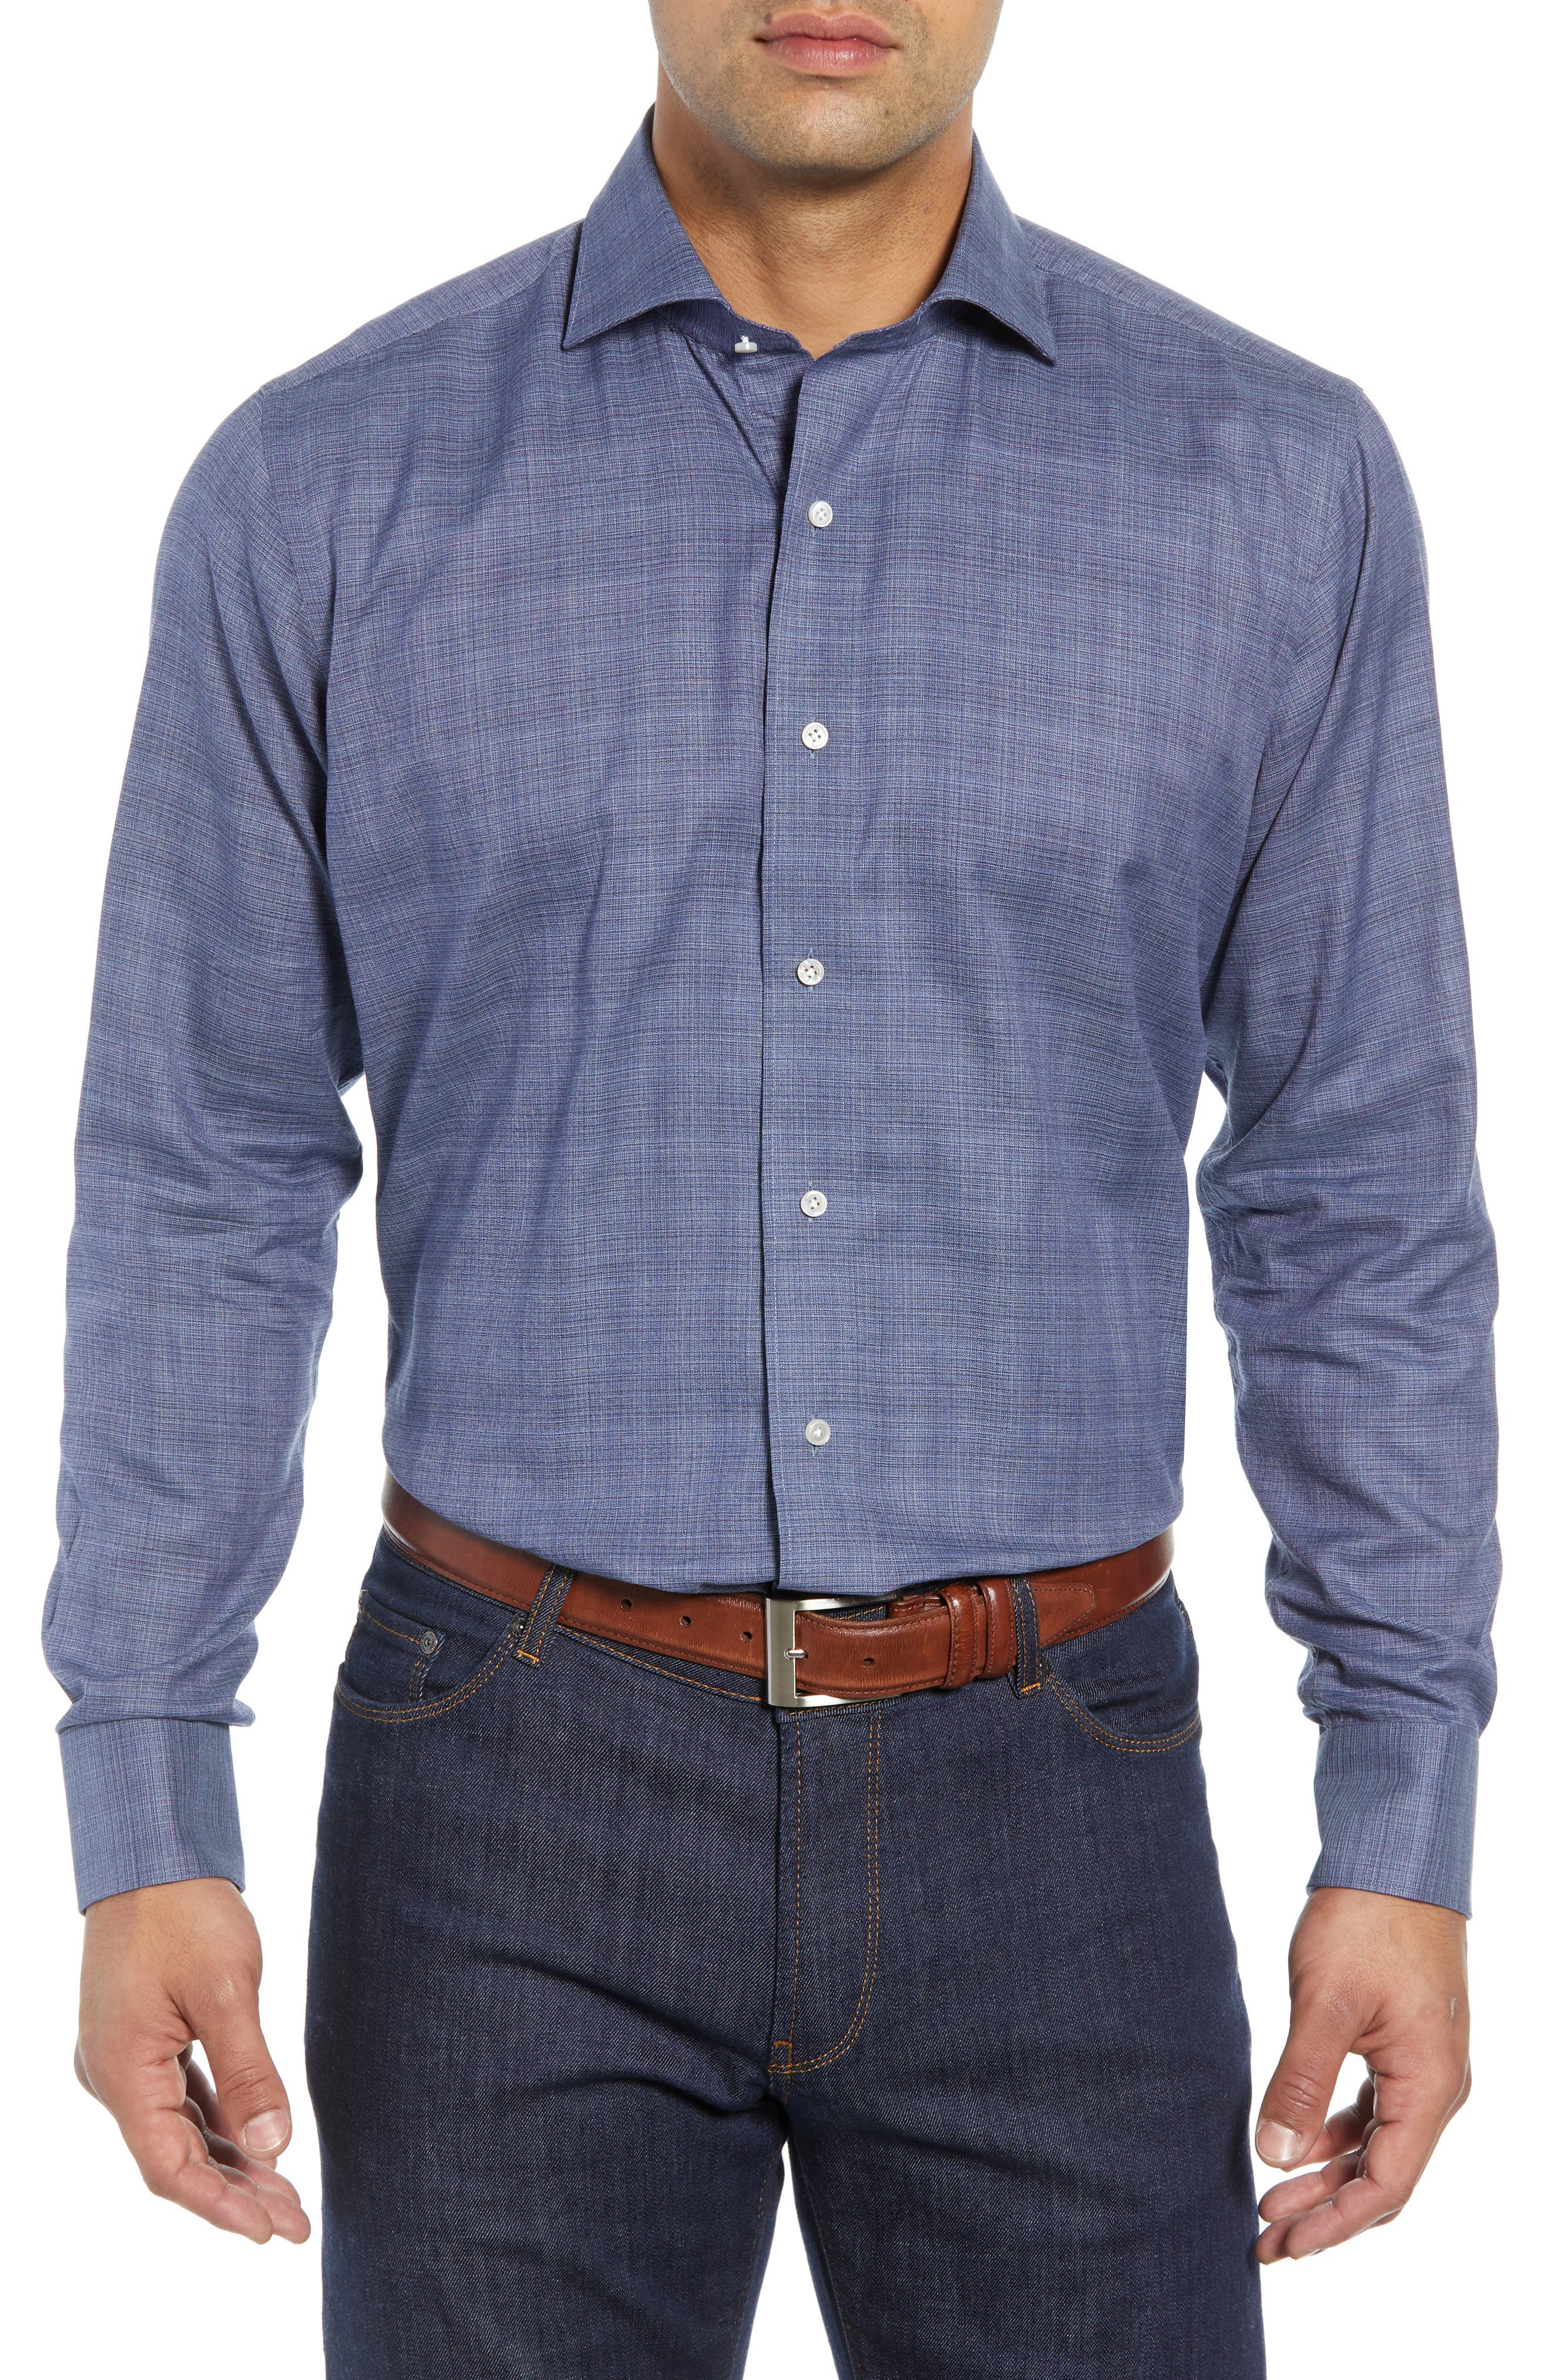 Starlight Regular Fit Chambray Sport Shirt,                             Main thumbnail 1, color,                             417